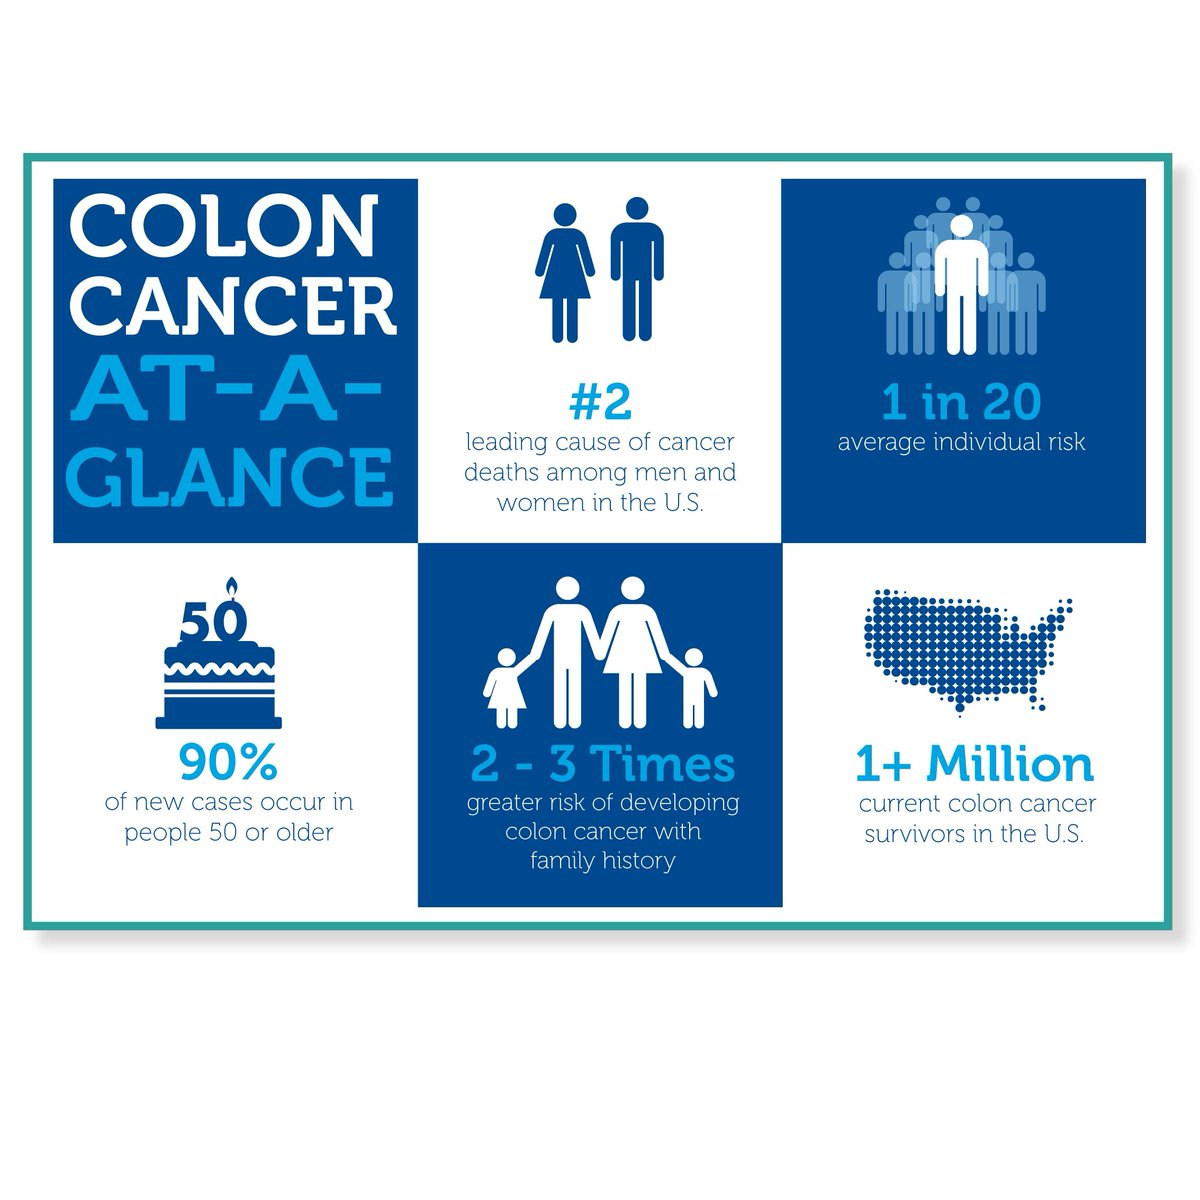 Colorectal Cancer Alliance On Twitter Do You Know The Facts Get More Coloncancer Facts Statistics Https T Co 51sh4lh5cv